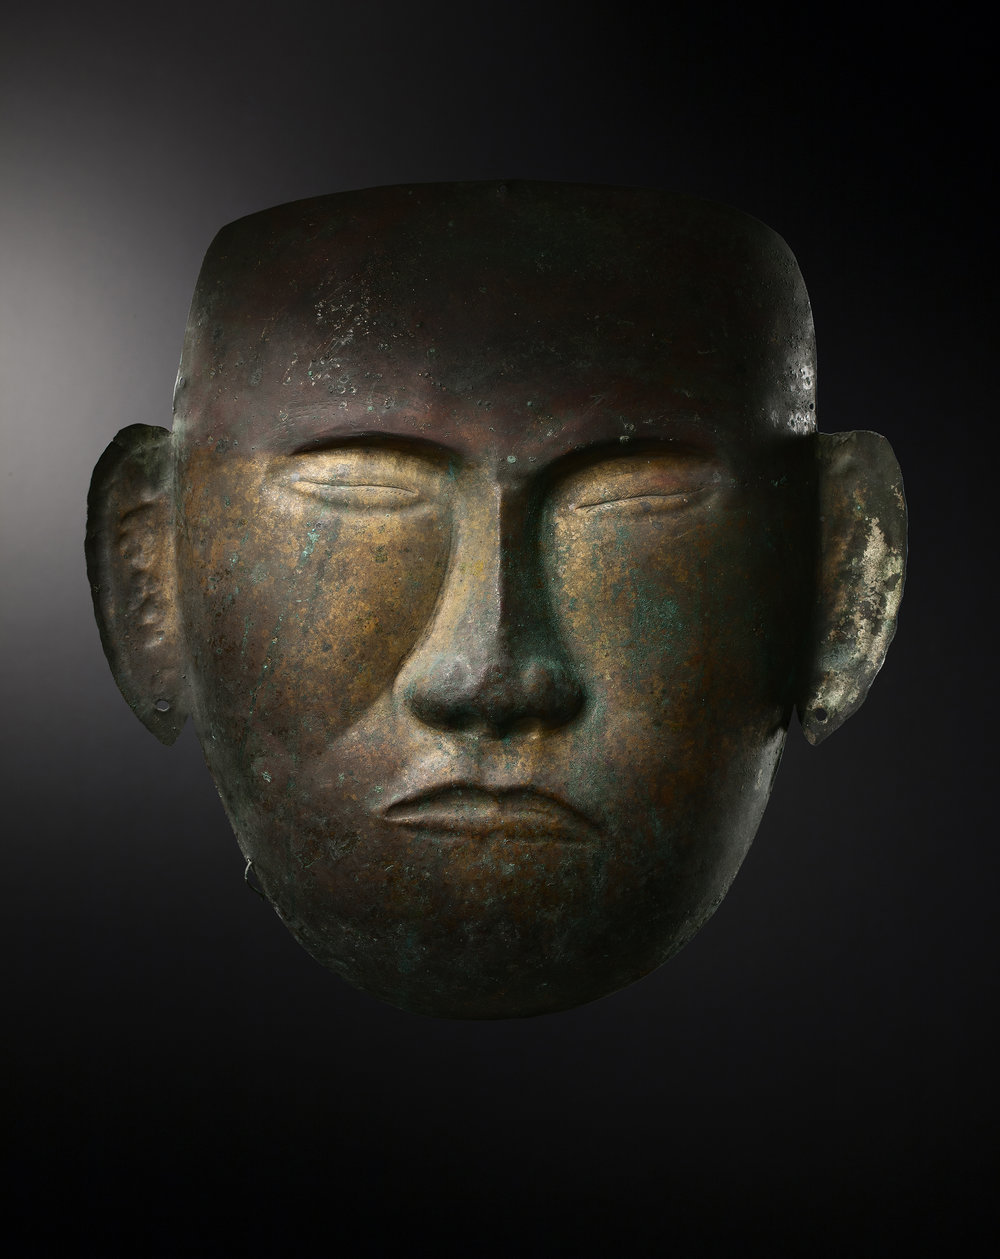 Death Mask - China, Liao Dinasty, 907-1125